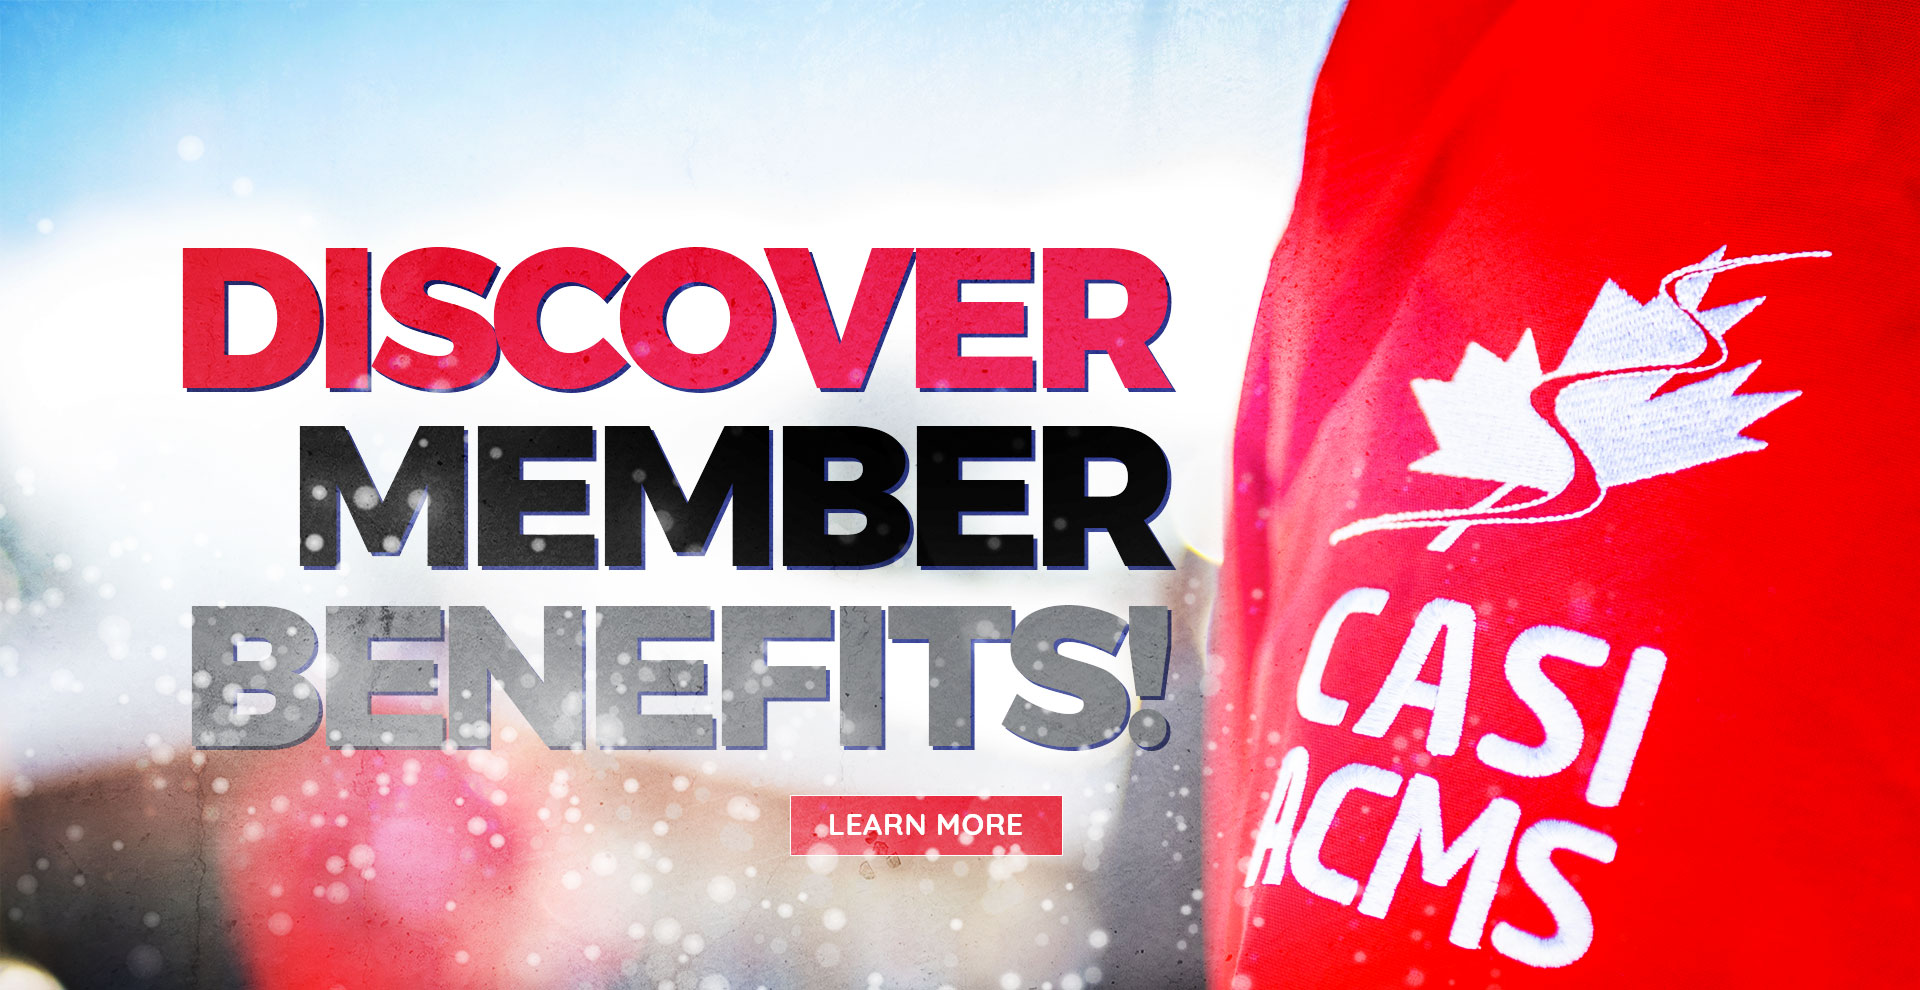 Discover Member Benefits!